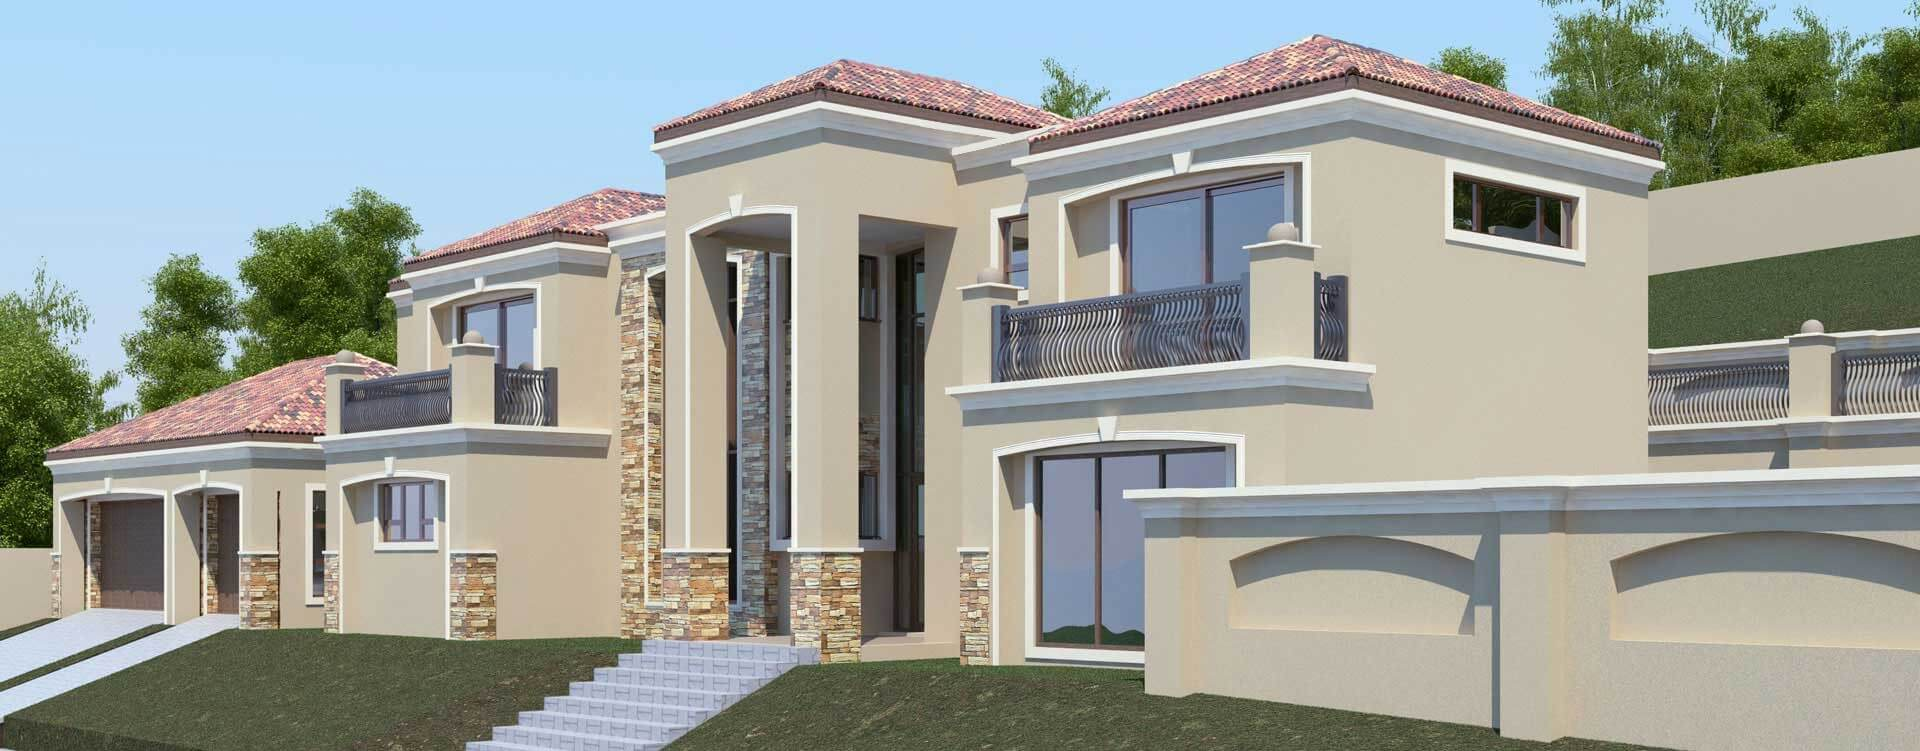 modern 5 bedroom house plans south africa house designs in south africa south - Modern African House Plans